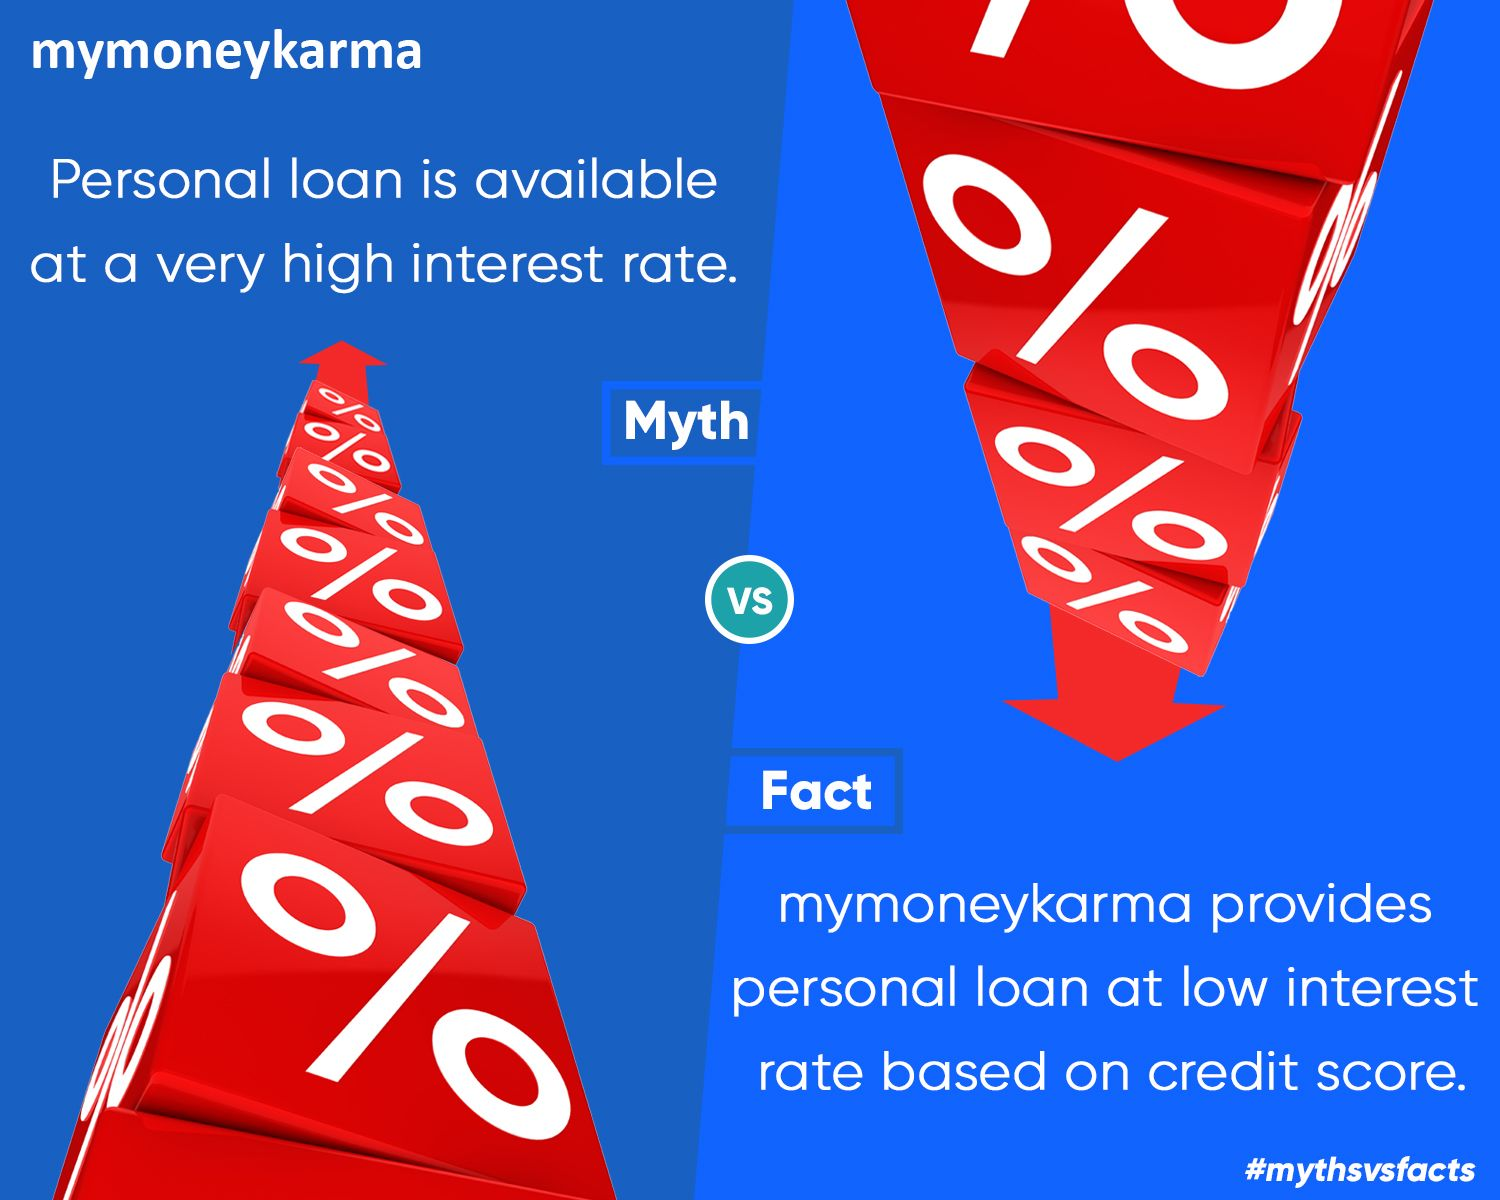 Don T Dwell On The Myths Around Personal Loan Mythsvsfacts Personalloan Mymoneykarma Personal Loans Balance Transfer Credit Cards Loan